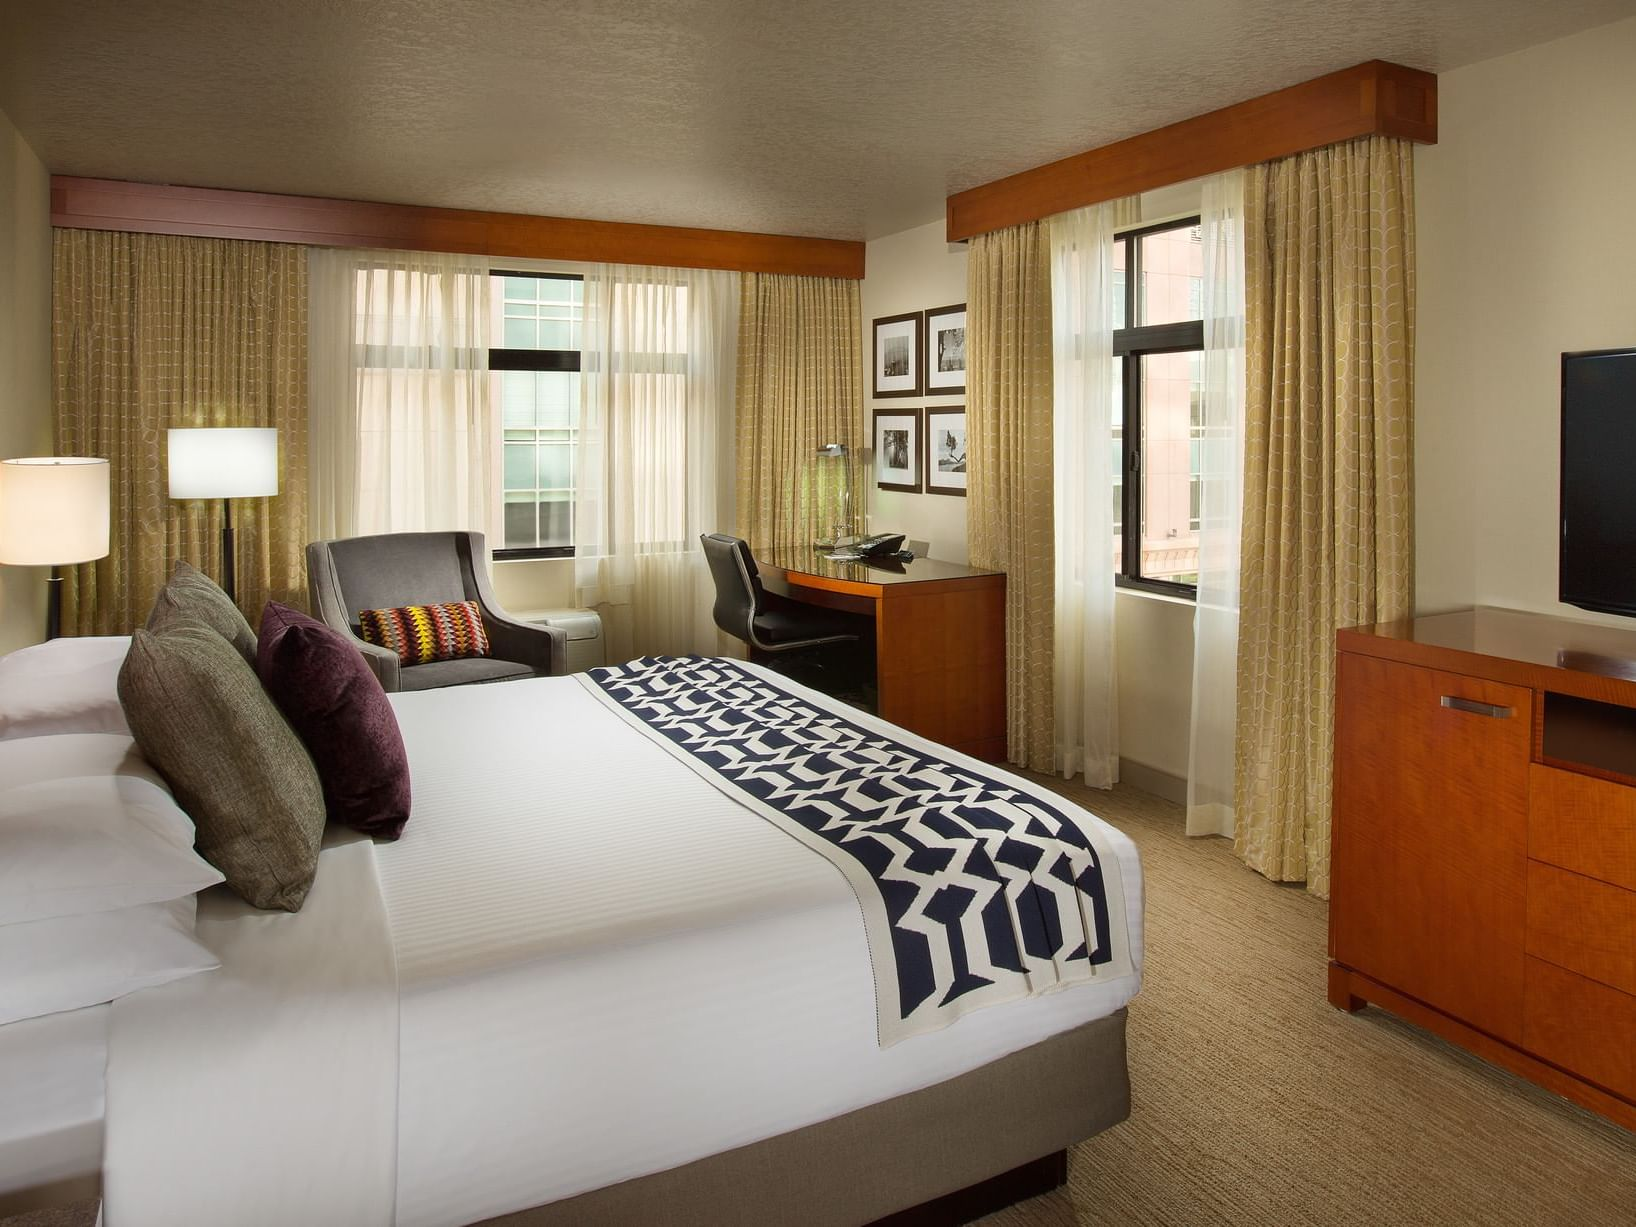 Bedroom of Traditional Premium at Paramount Hotel Seattle